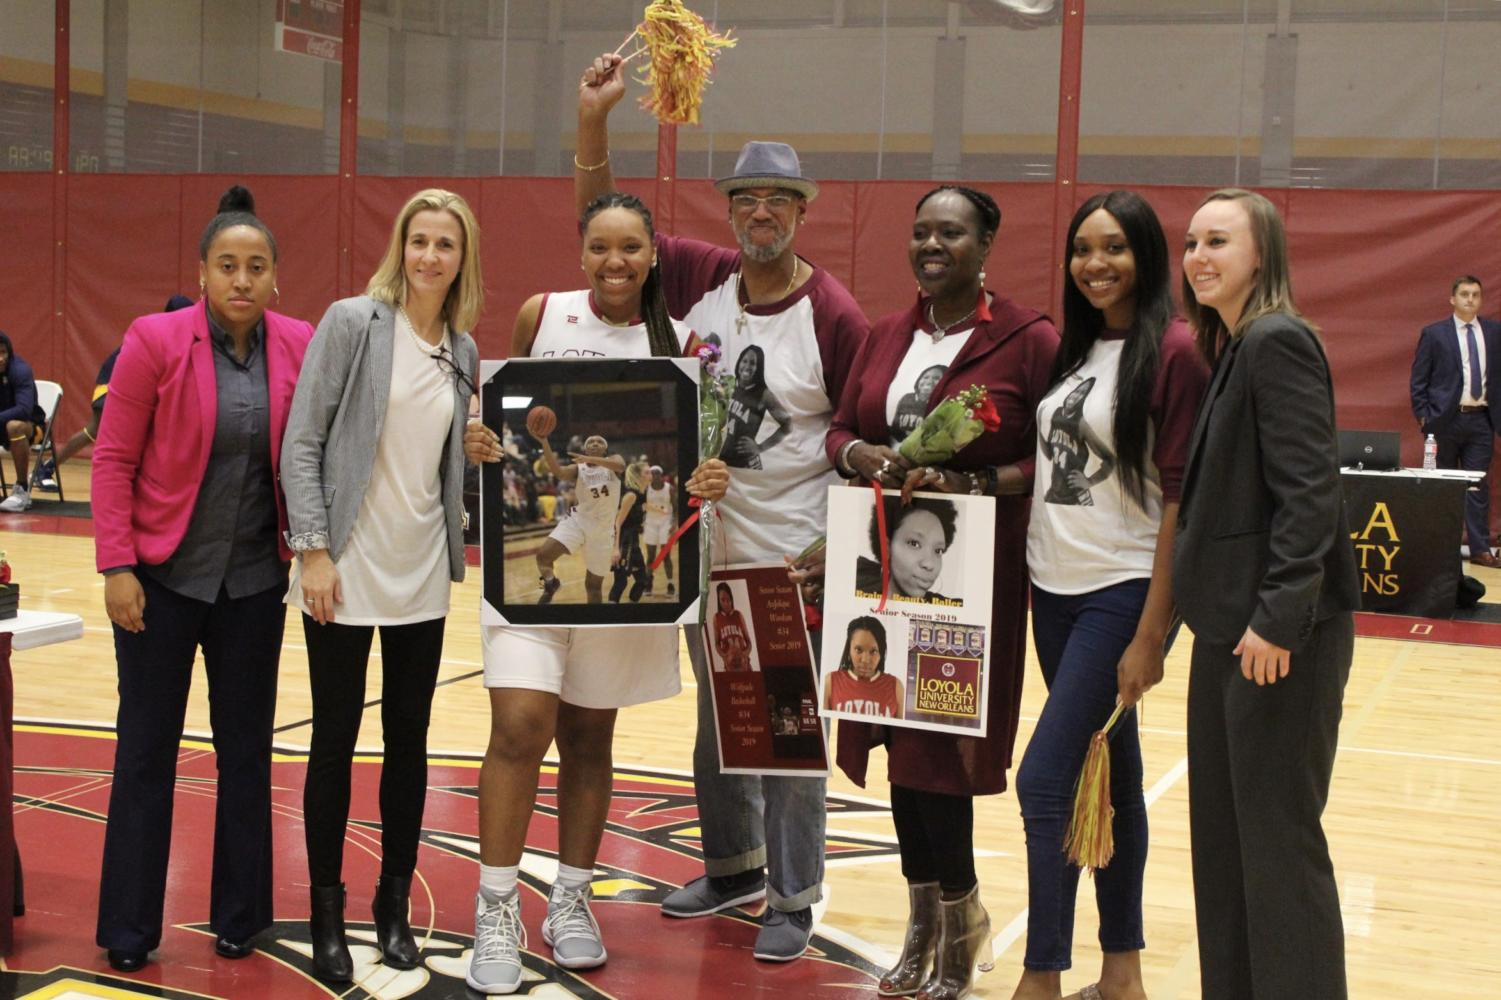 Biology+senior+An%27Jolique+Woodson+poses+with+her+family+and+the+women%27s+basketball+coaching+staff.